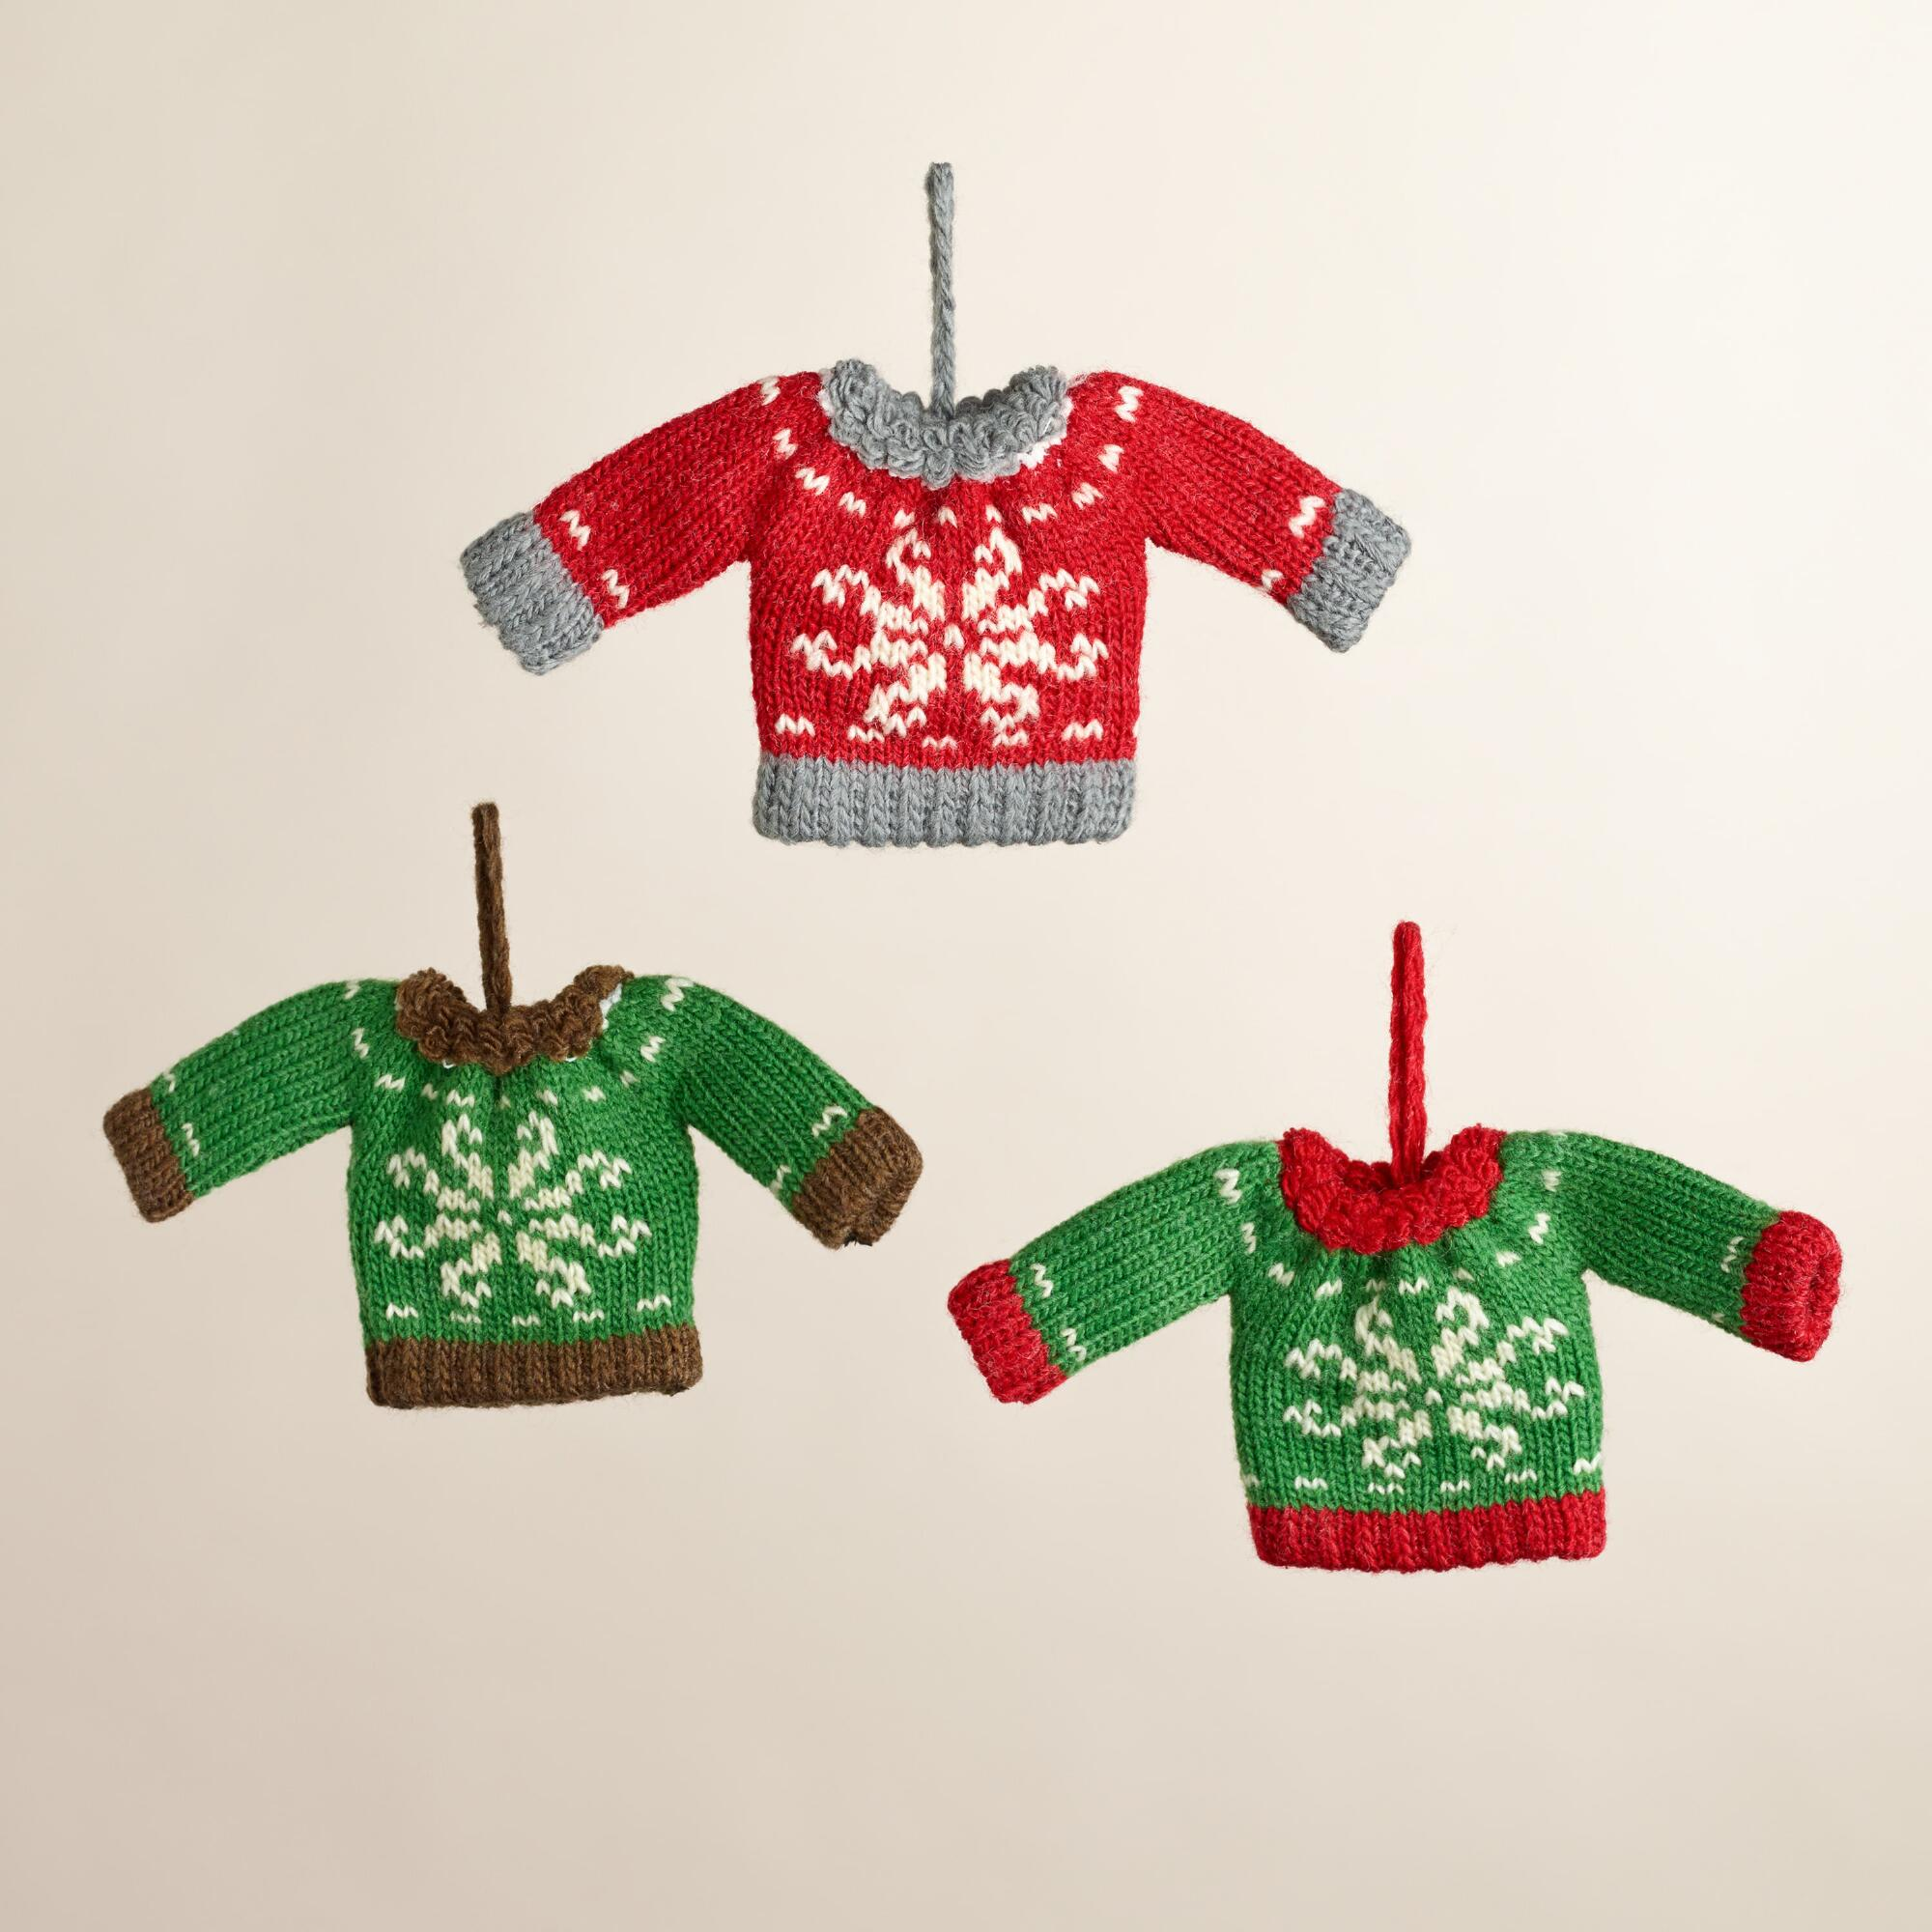 Knitted Christmas Decorations To Buy : Mini knit sweater ornaments set of world market